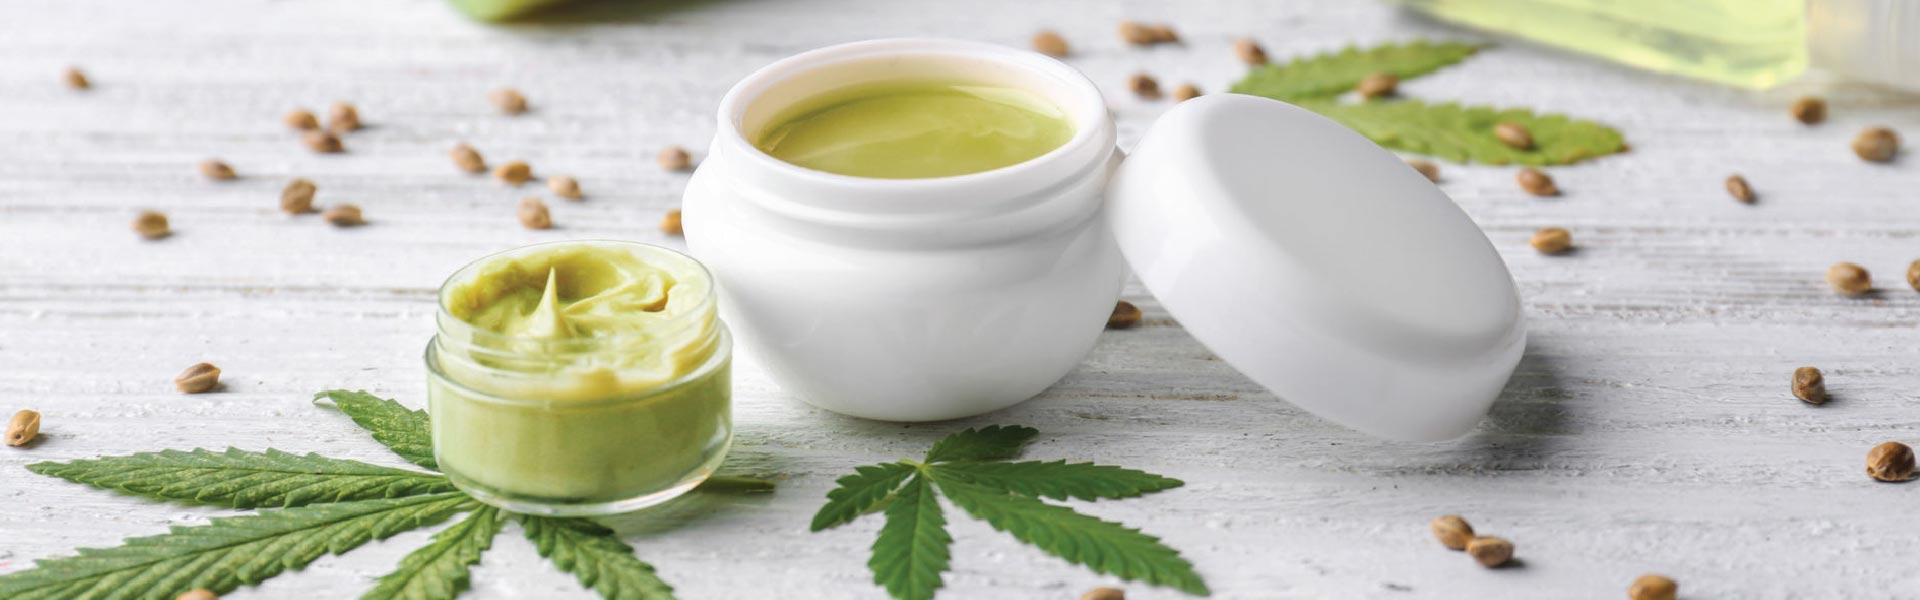 Skin Care Products Containing Cannabidiol